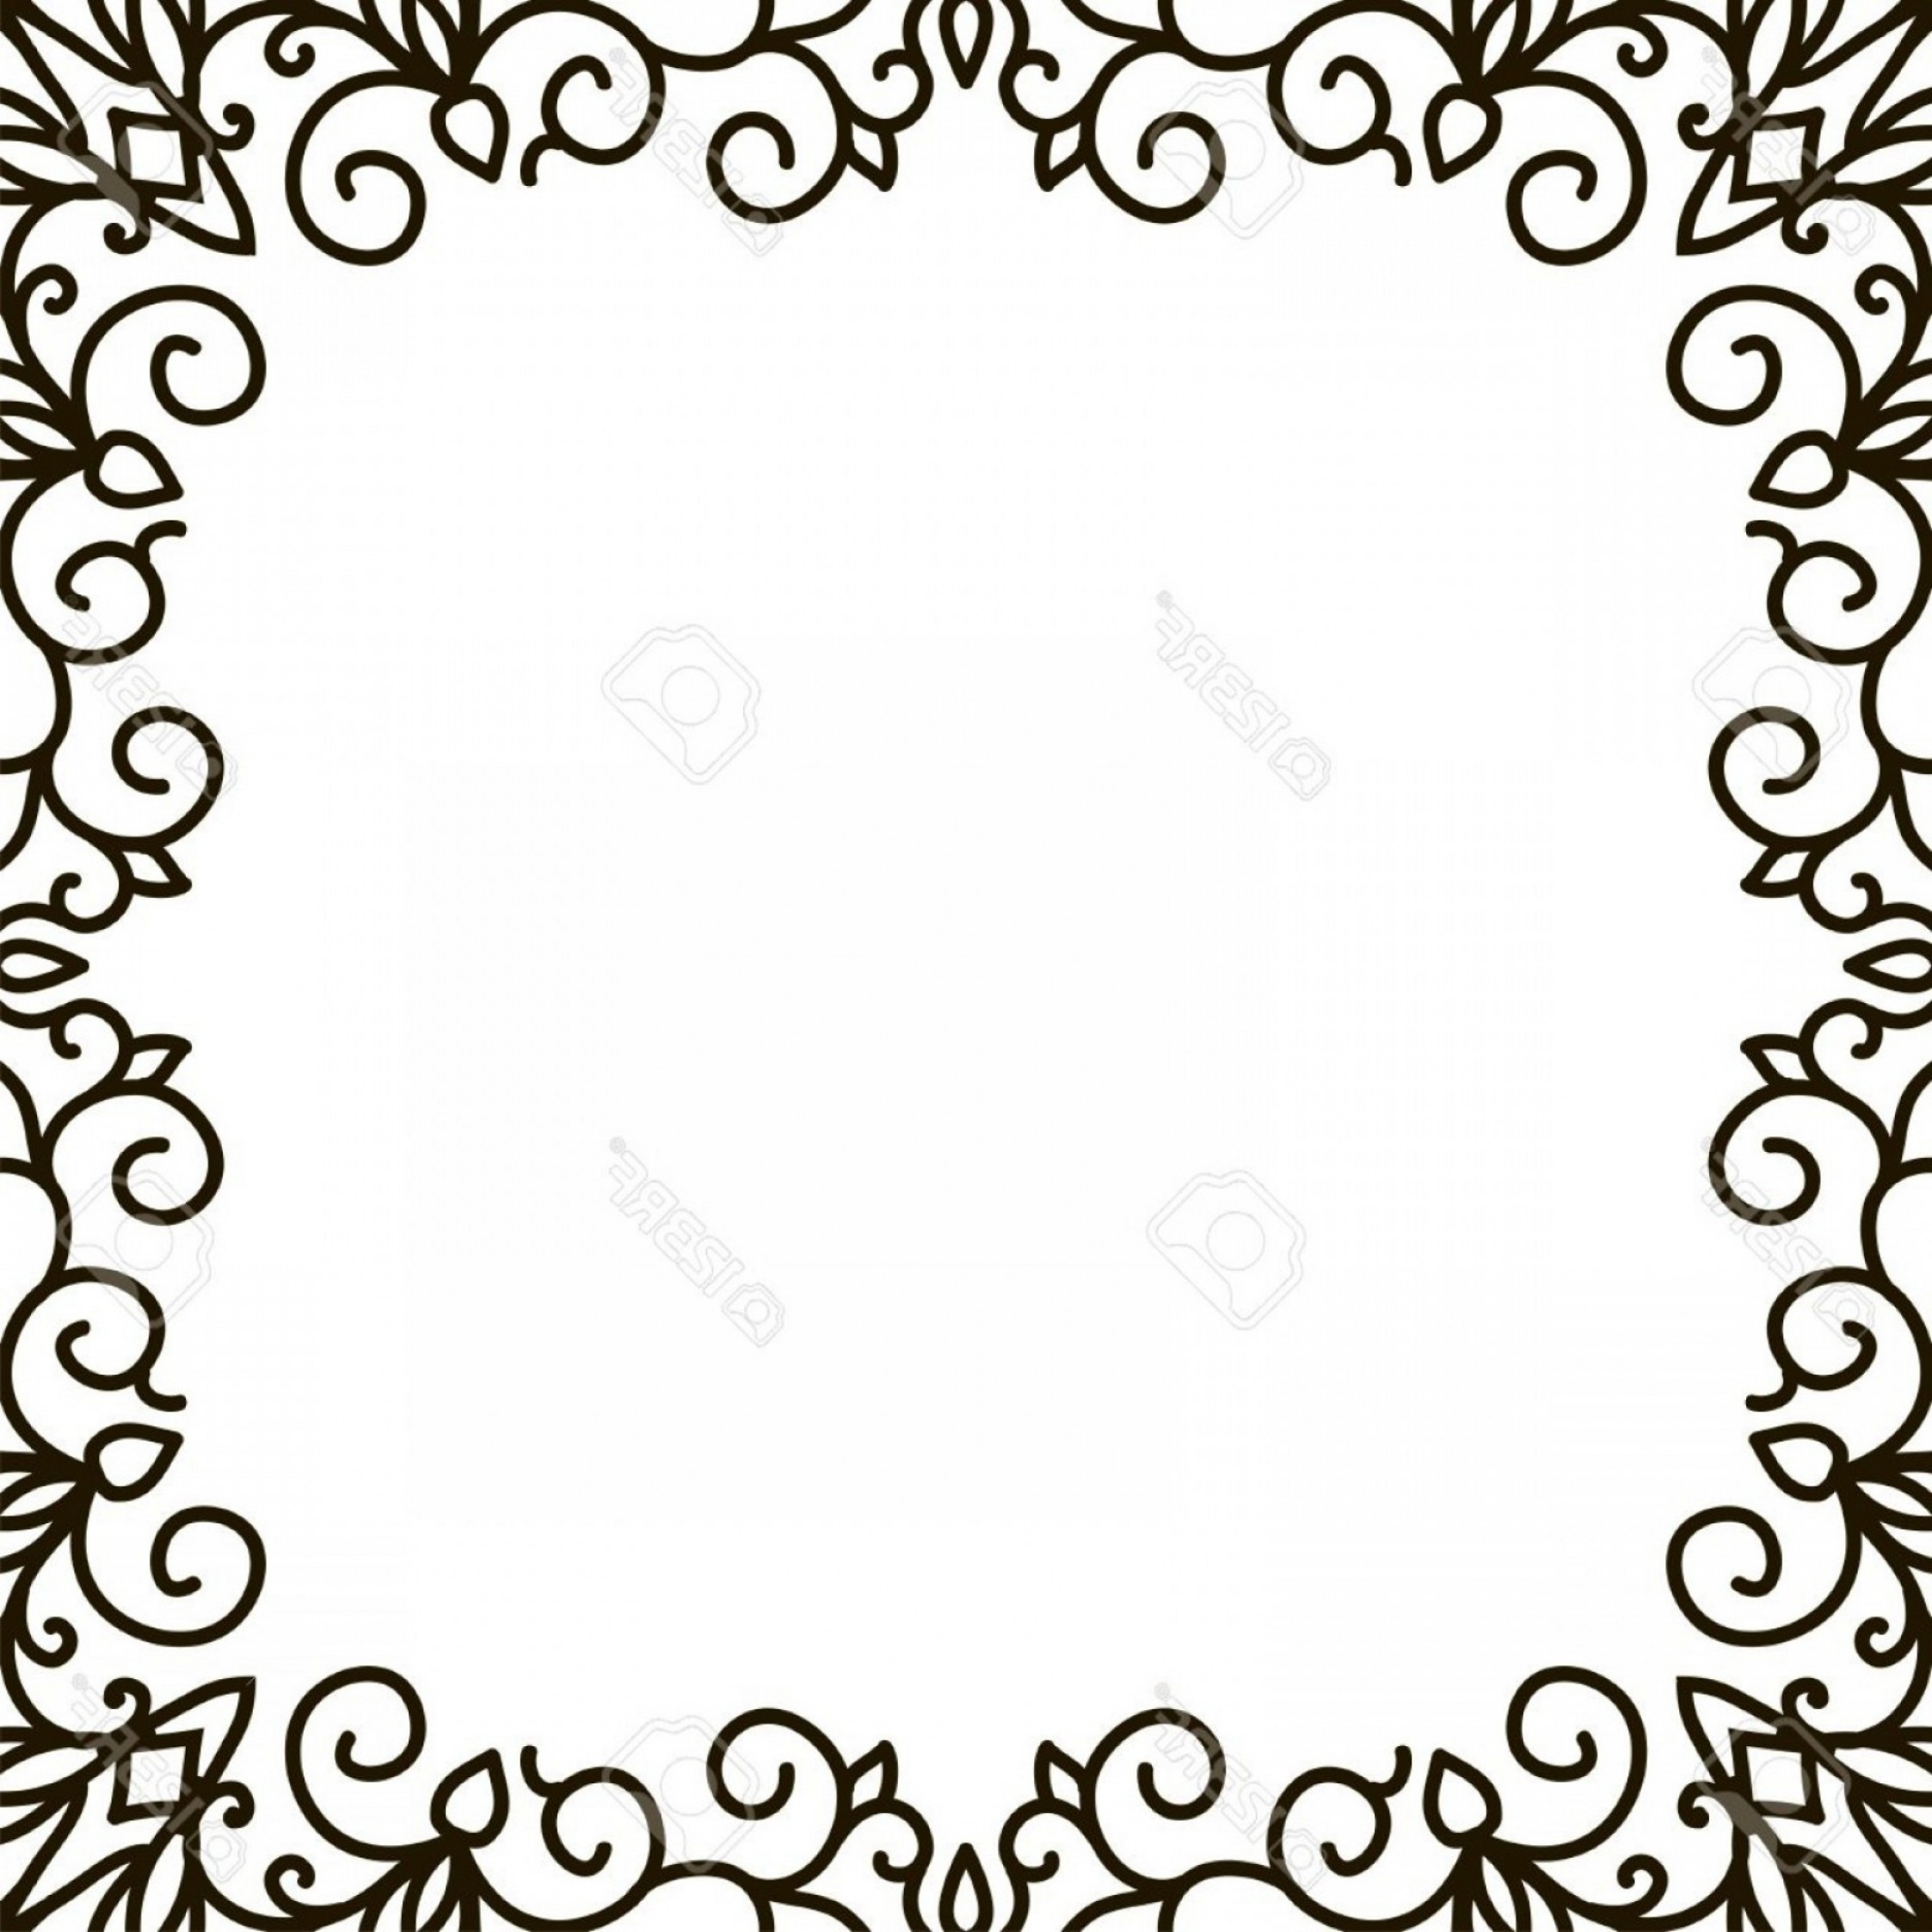 Square Black Vector Border Frame: Photostock Vector Swirl Floral Frame Old Black Doodle Border Black And White Floral Frame Square Shape Abstract Art